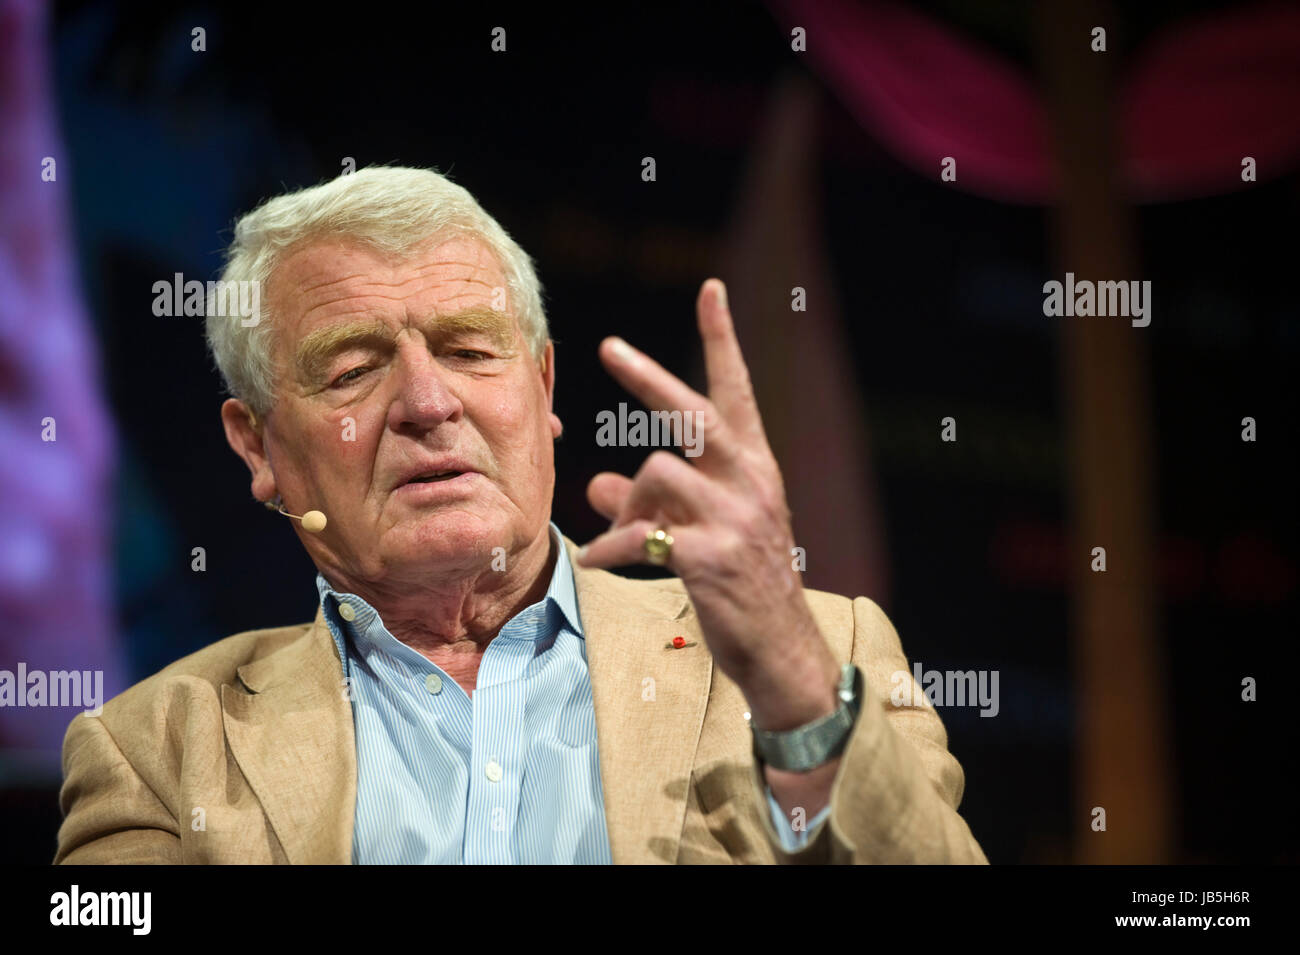 Paddy Ashdown British politician diplomat and author speaking on stage at Hay Festival of Literature and the Arts Stock Photo